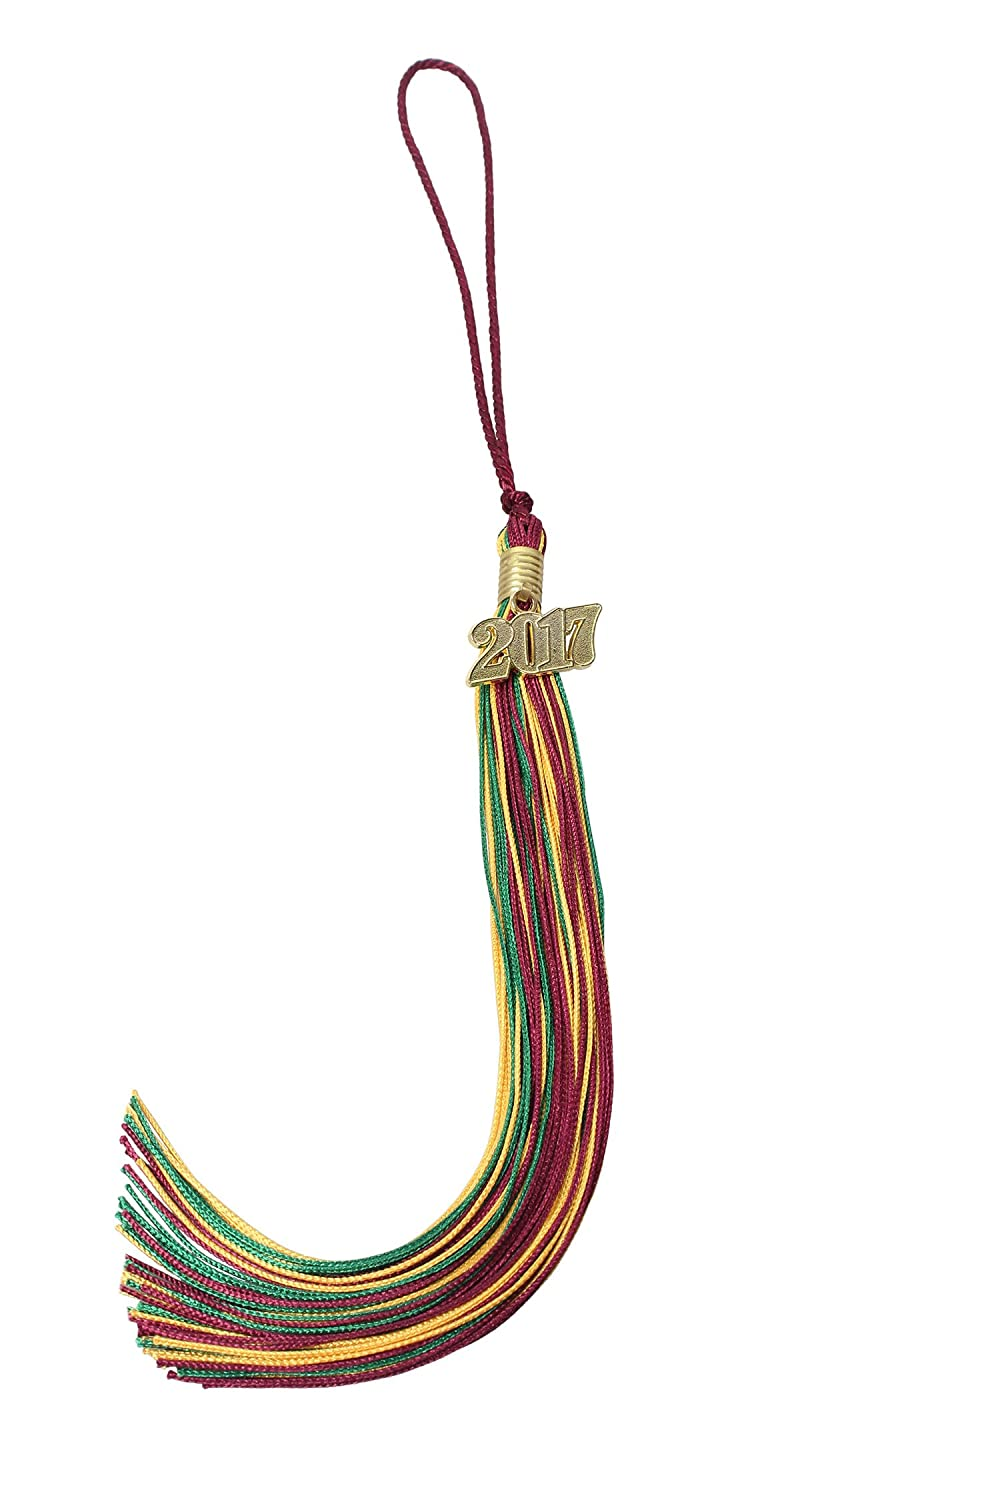 GradPlaza Graduation Tassel with 2017 Gold Year Charm Mix Three Colors